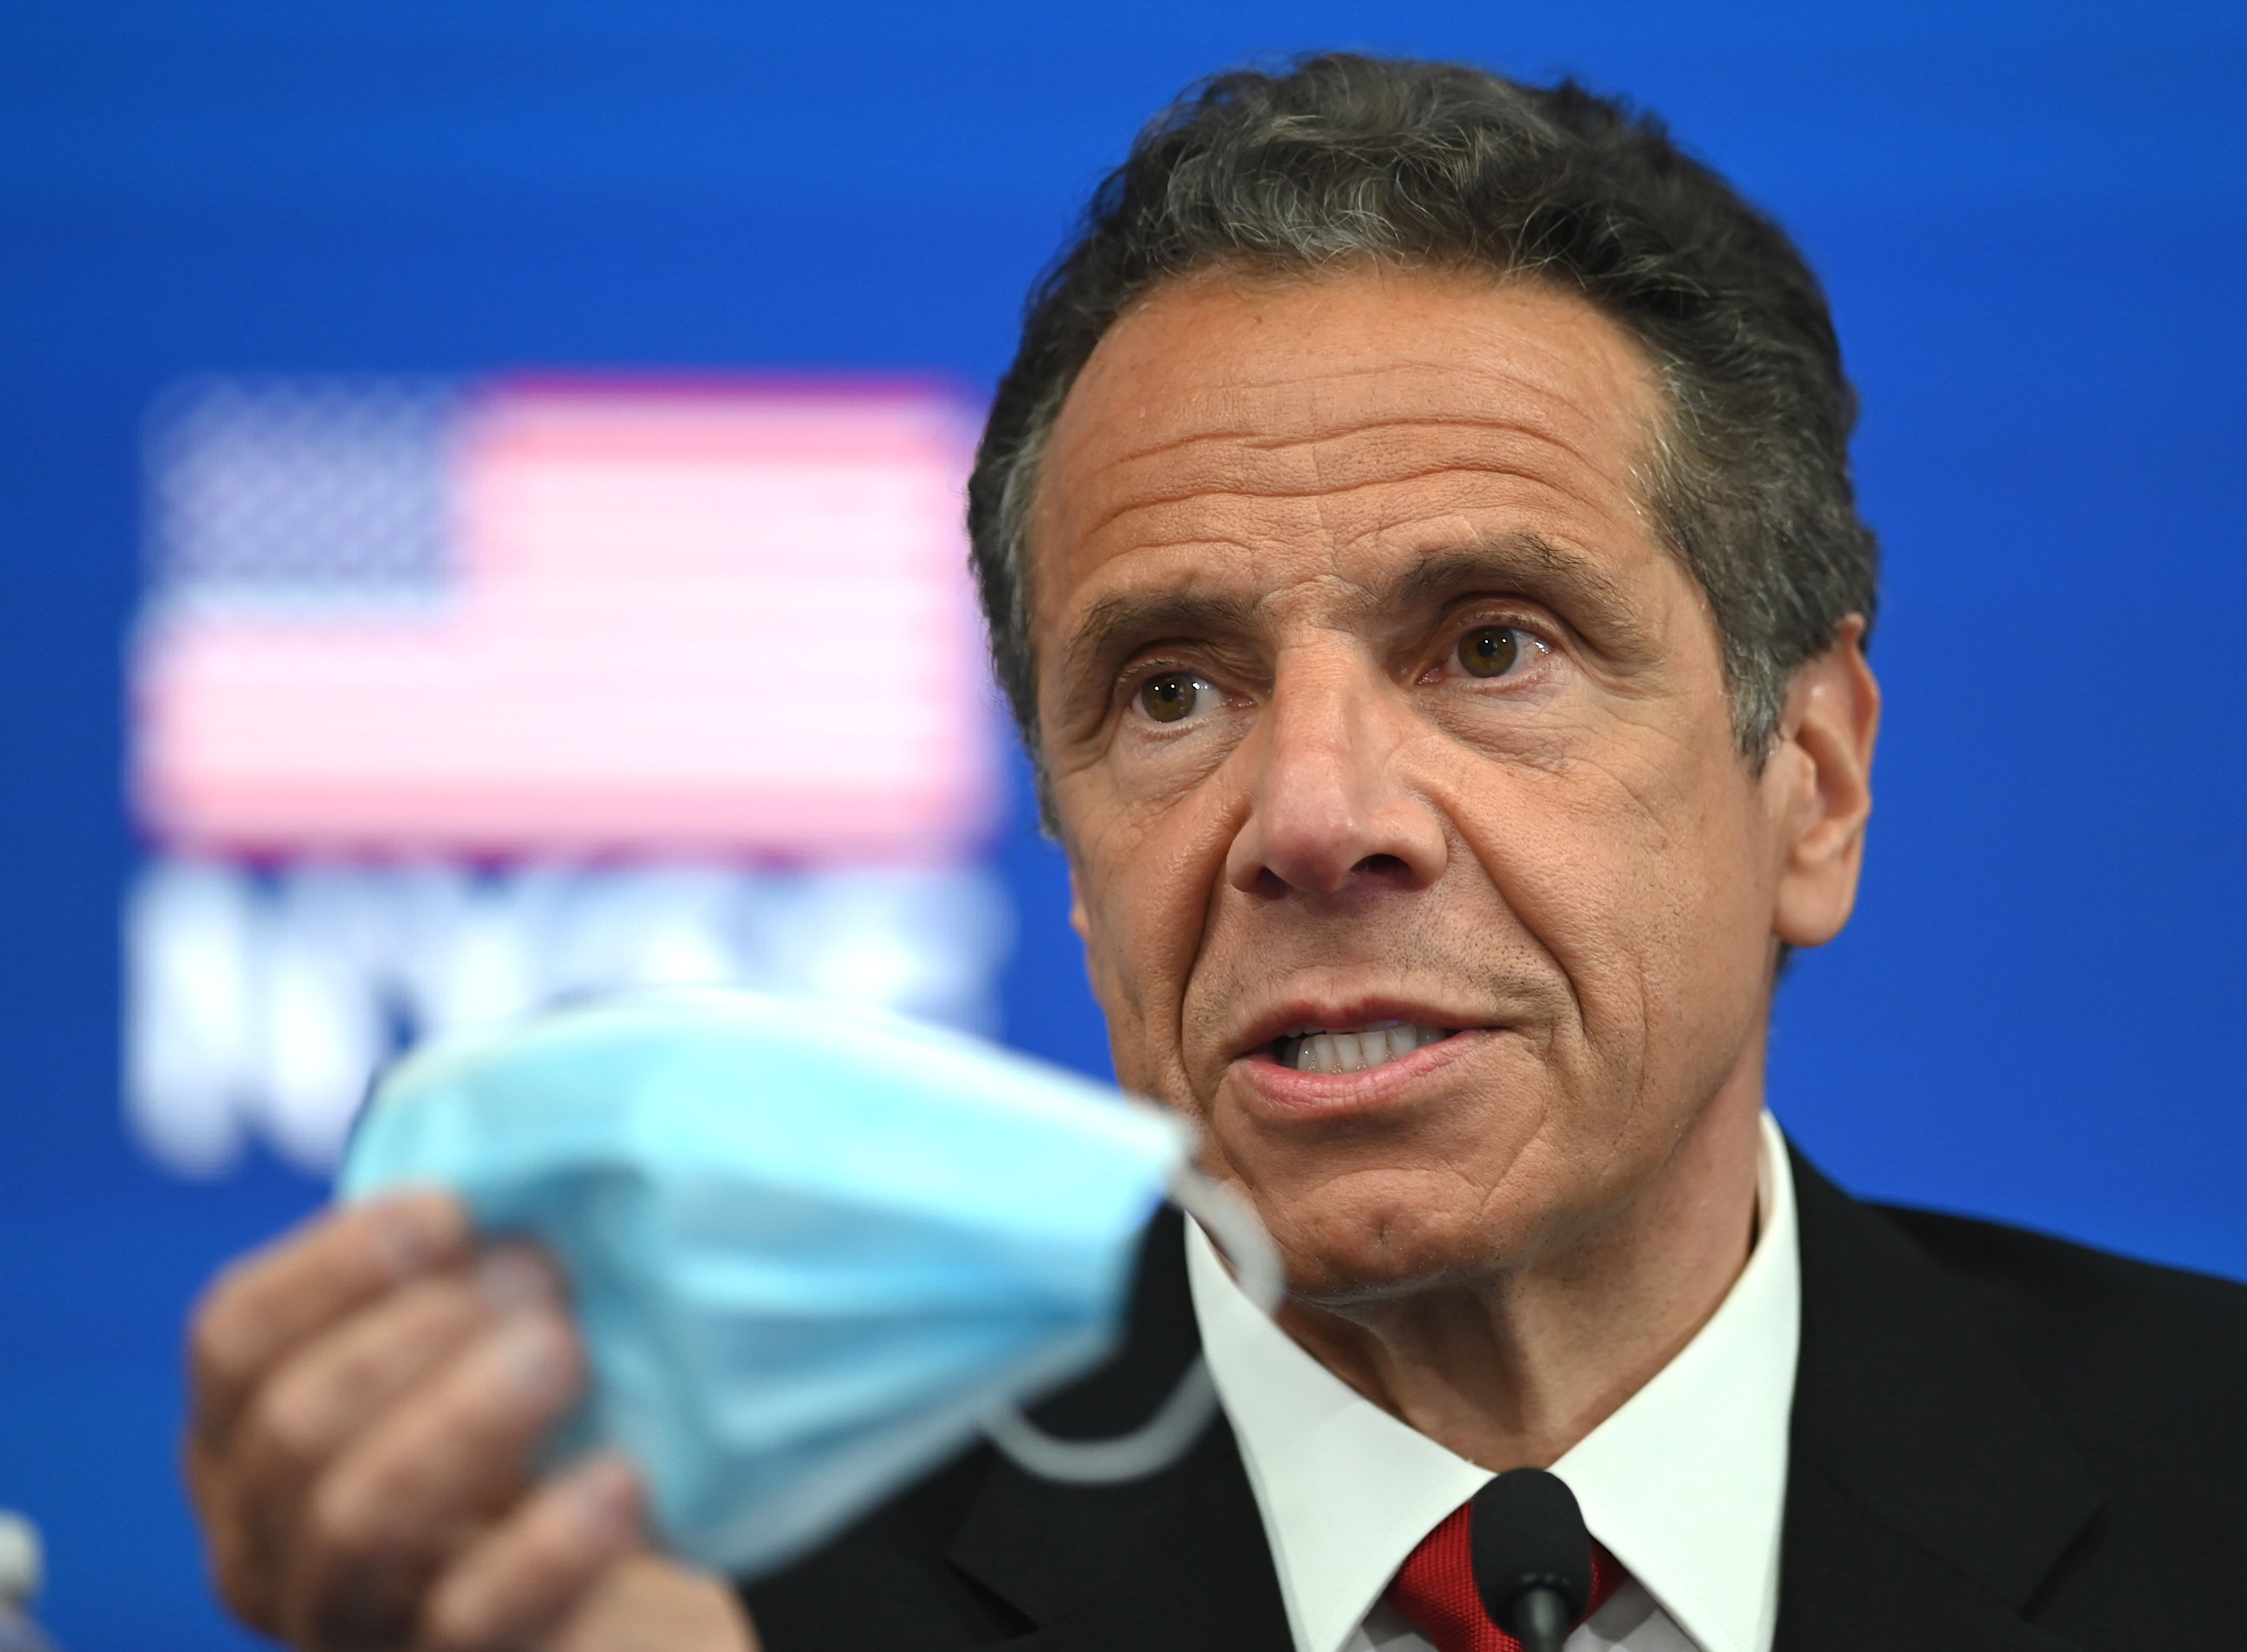 Cuomo tells Republicans to 'stop abusing' states like New York and New Jersey hit hardest by coronavirus